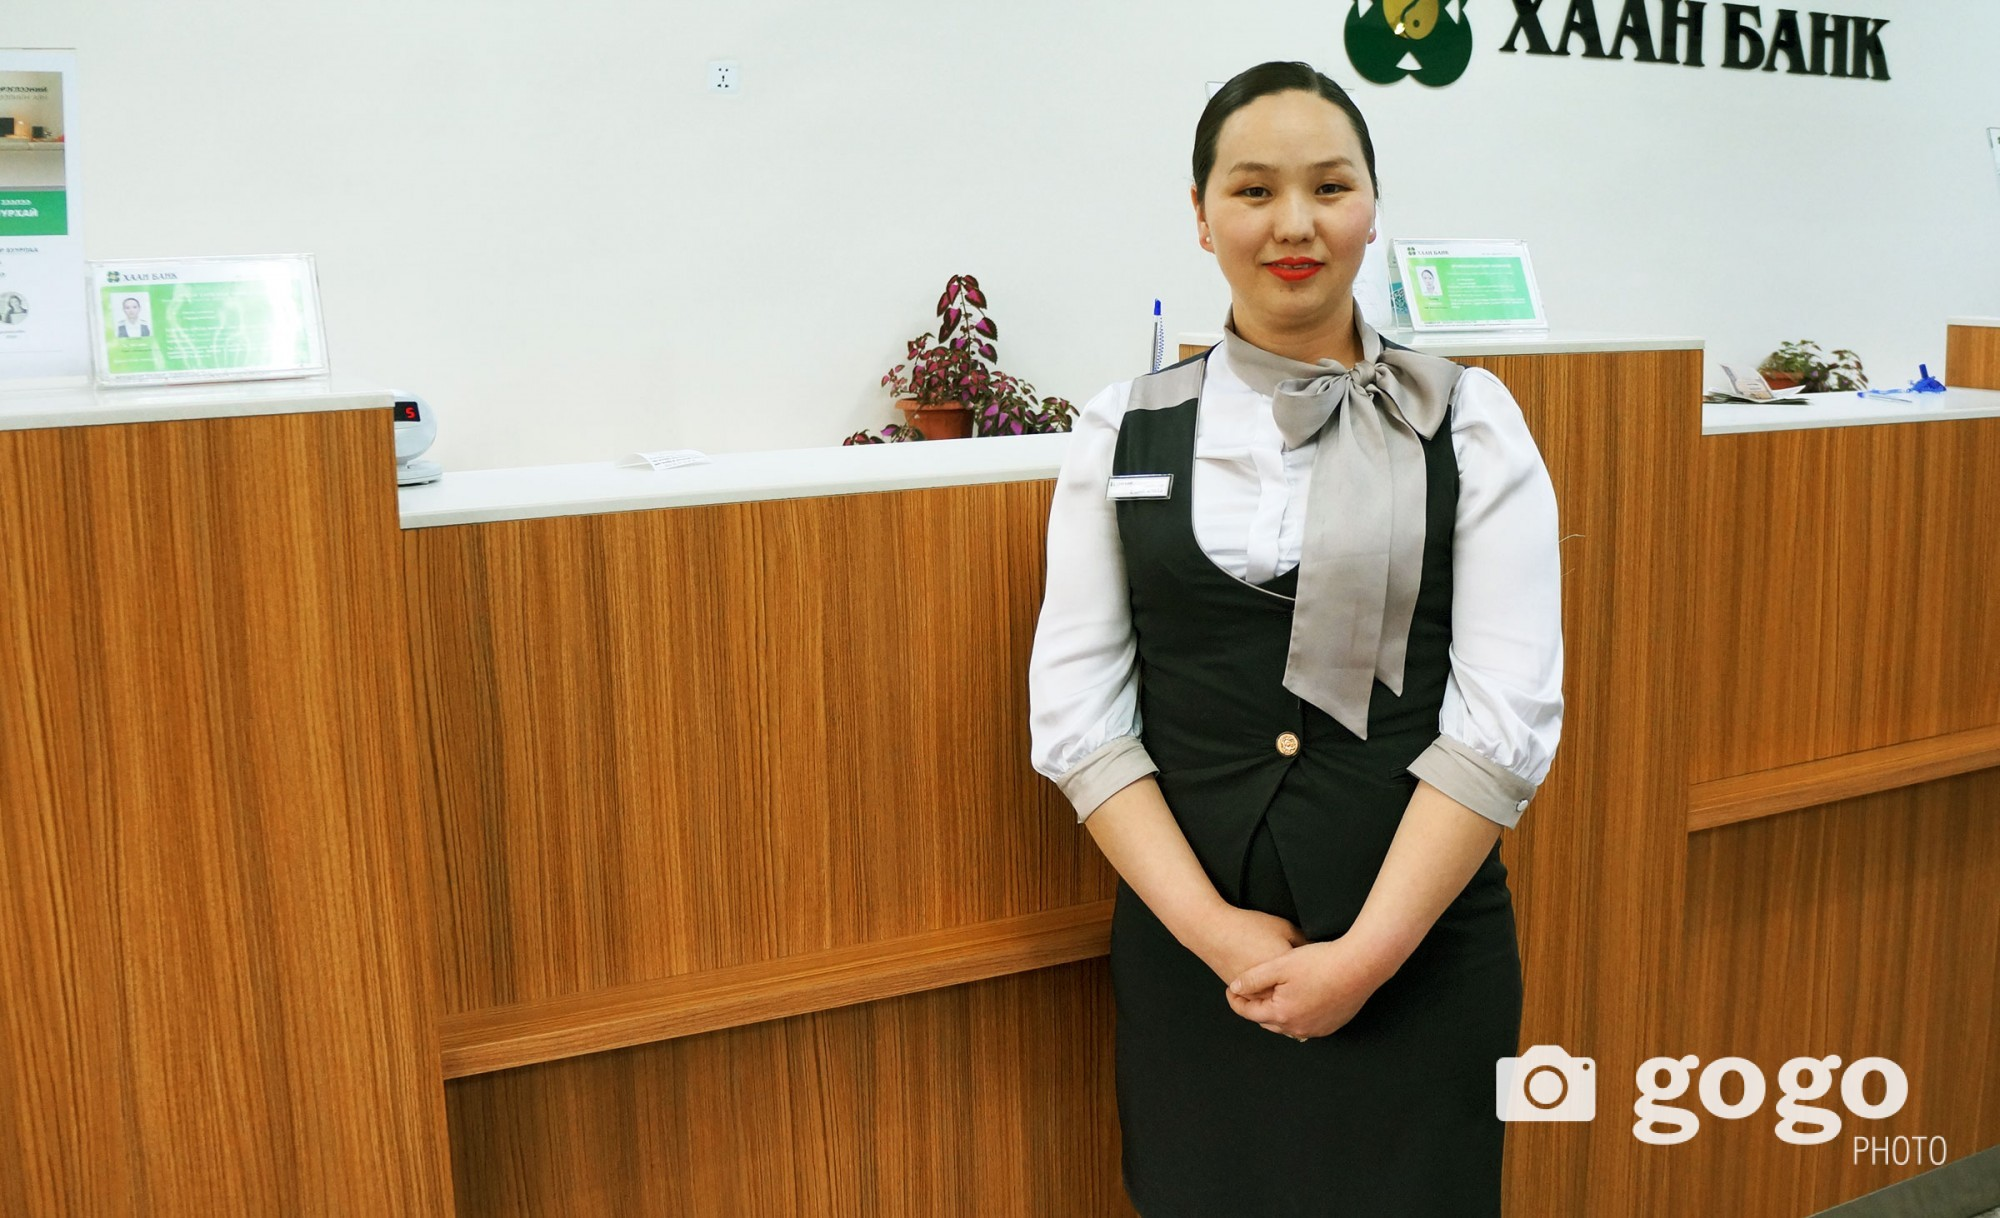 S.Baigalmaa works as teller at Khan bank. She wants people to be patient and become more respectful of each other.